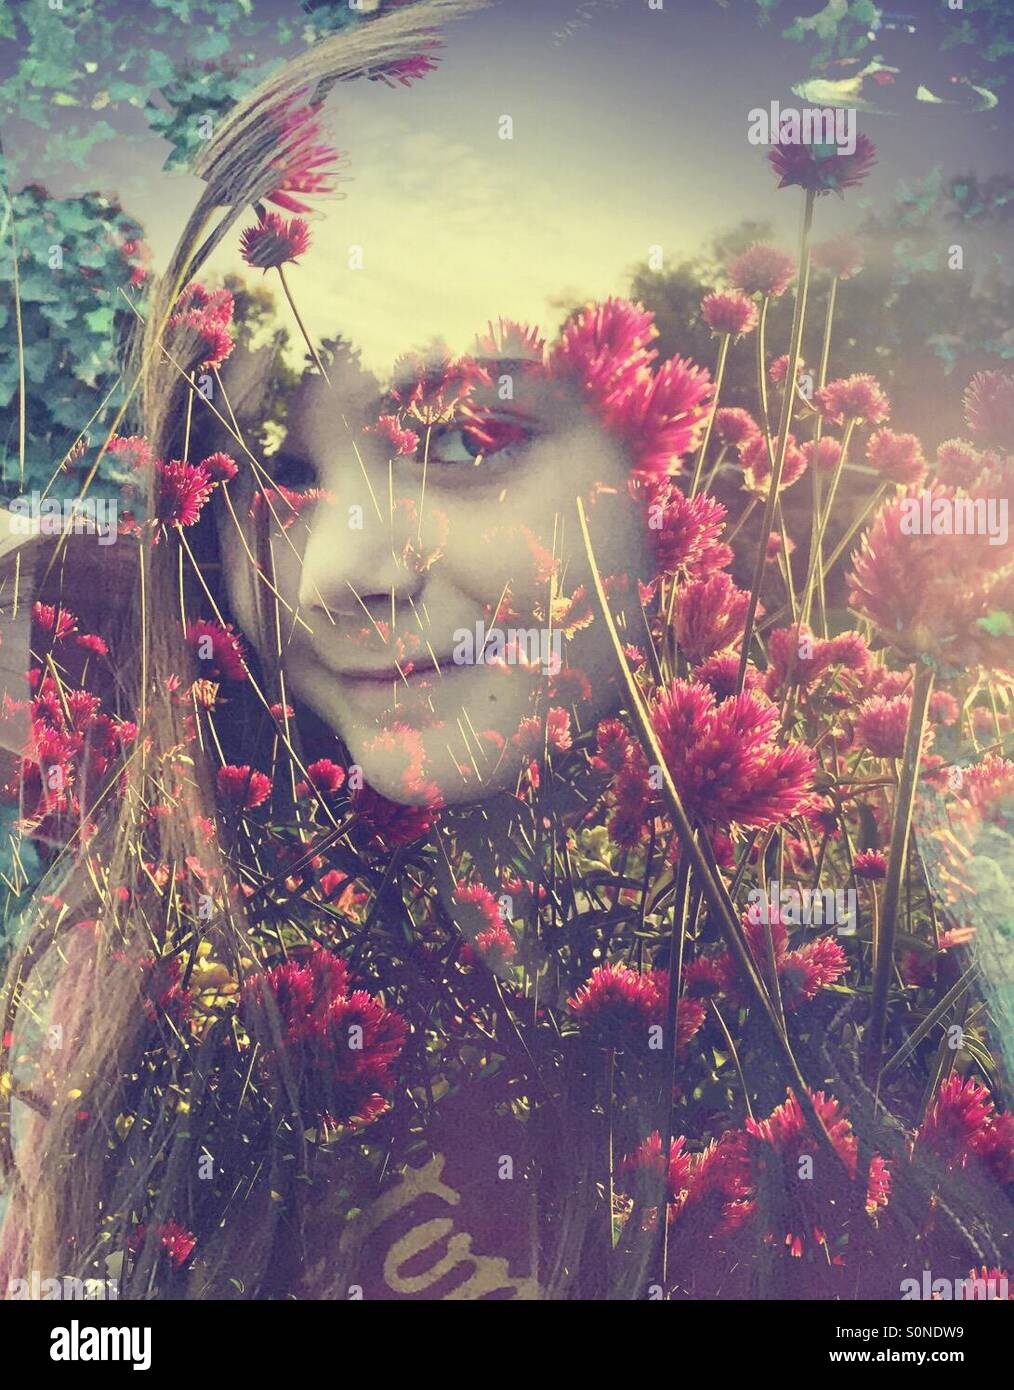 A double exposure image of a girl sitting against a backdrop of pink wildflowers. - Stock Image